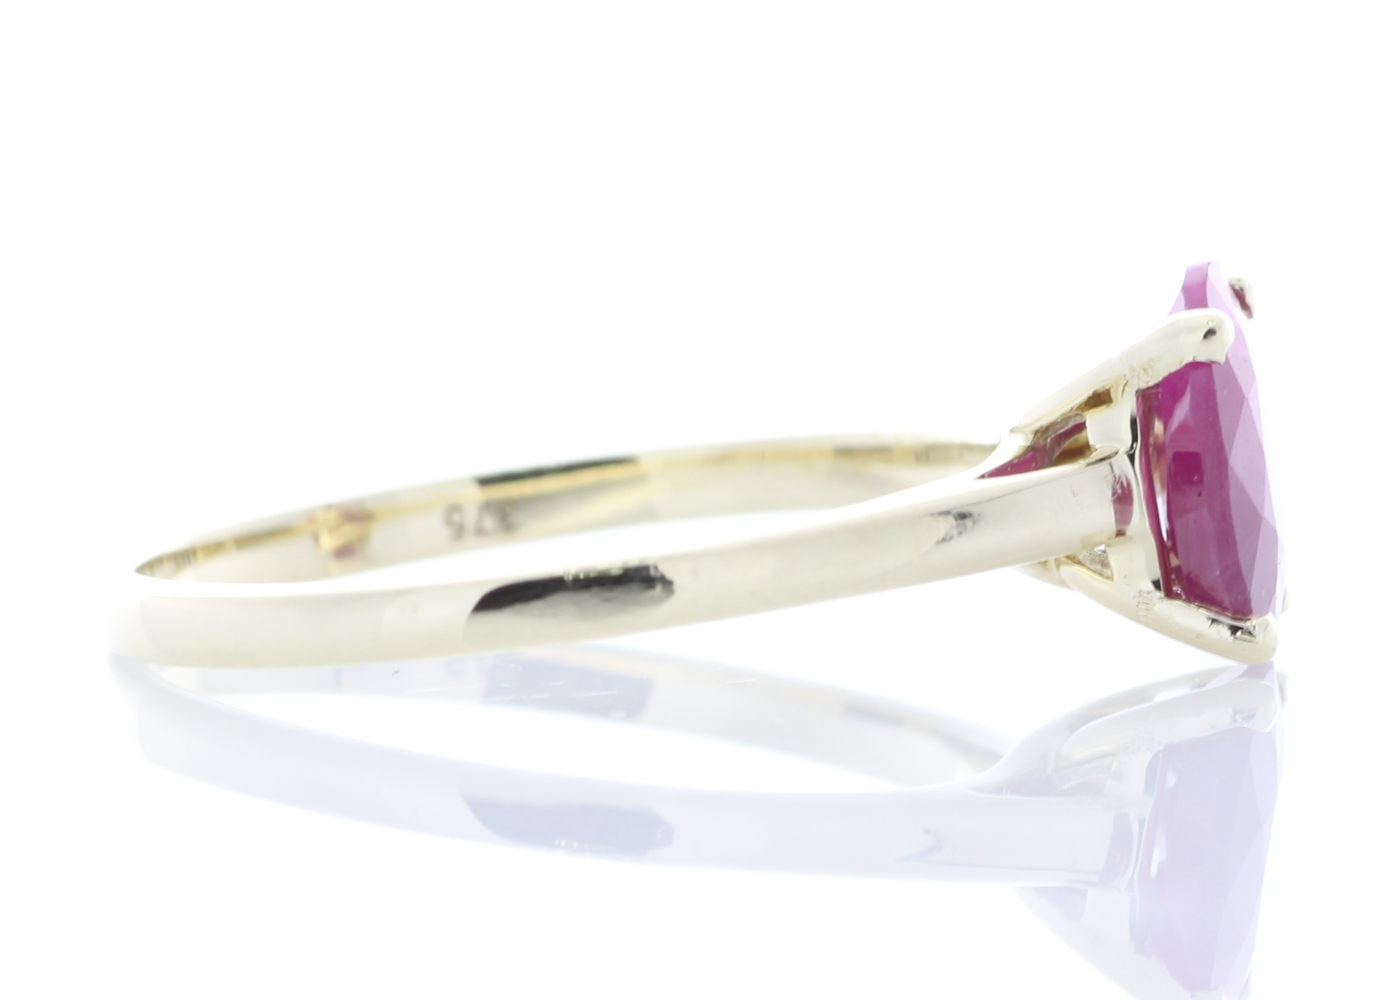 9ct Yellow Gold Oval Cut Ruby Ring 1.24 Carats - Image 4 of 4